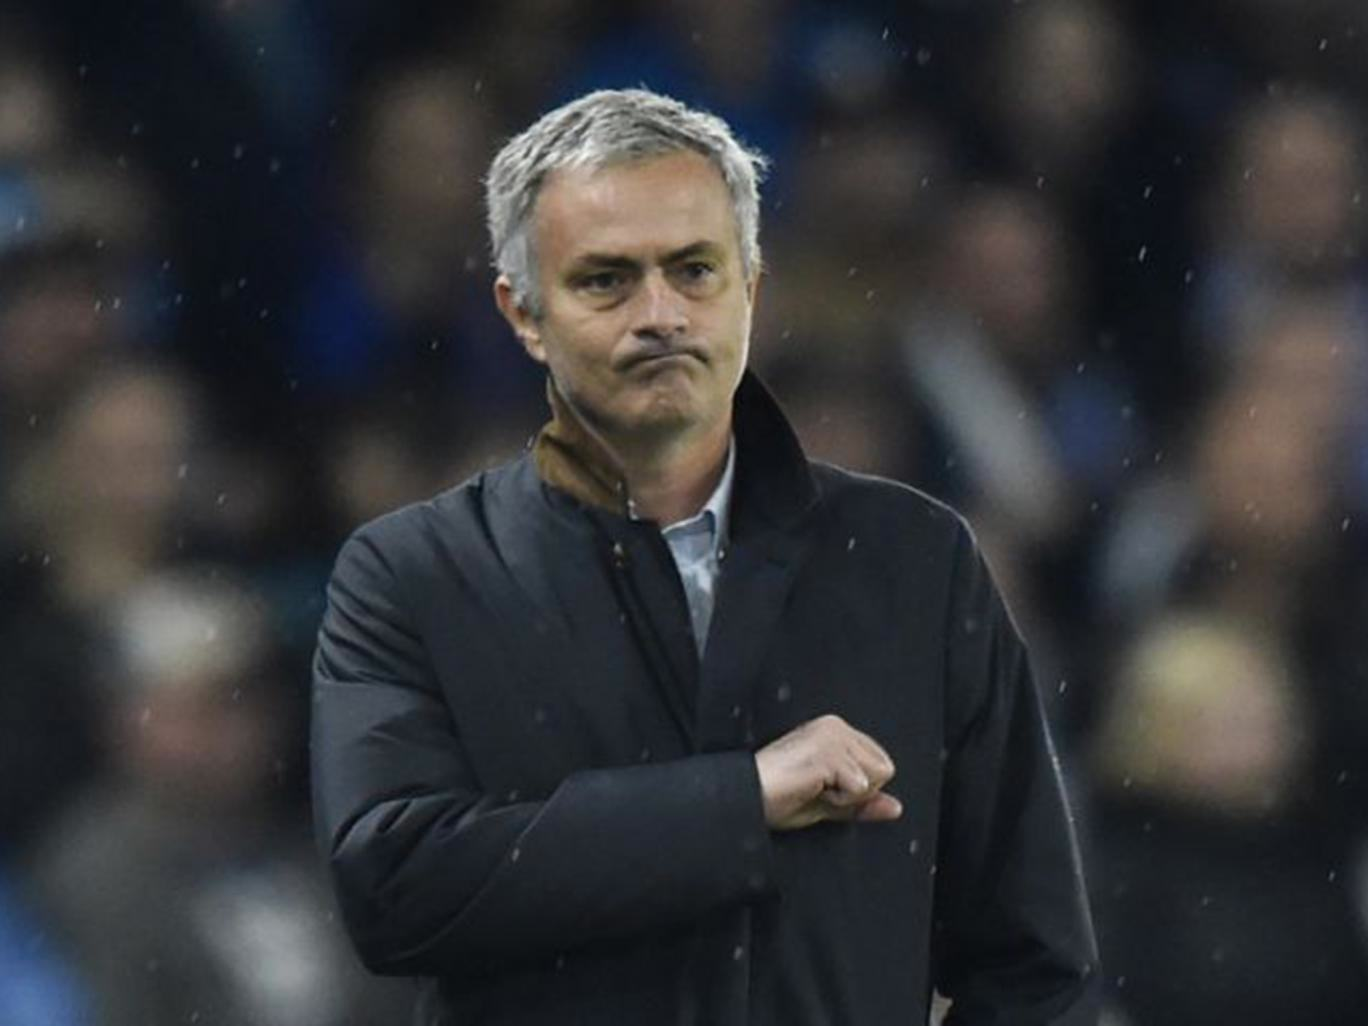 Jose Mourinho Is Chelseas Special One, And The Fans Know It UNILAD Mourinho51023